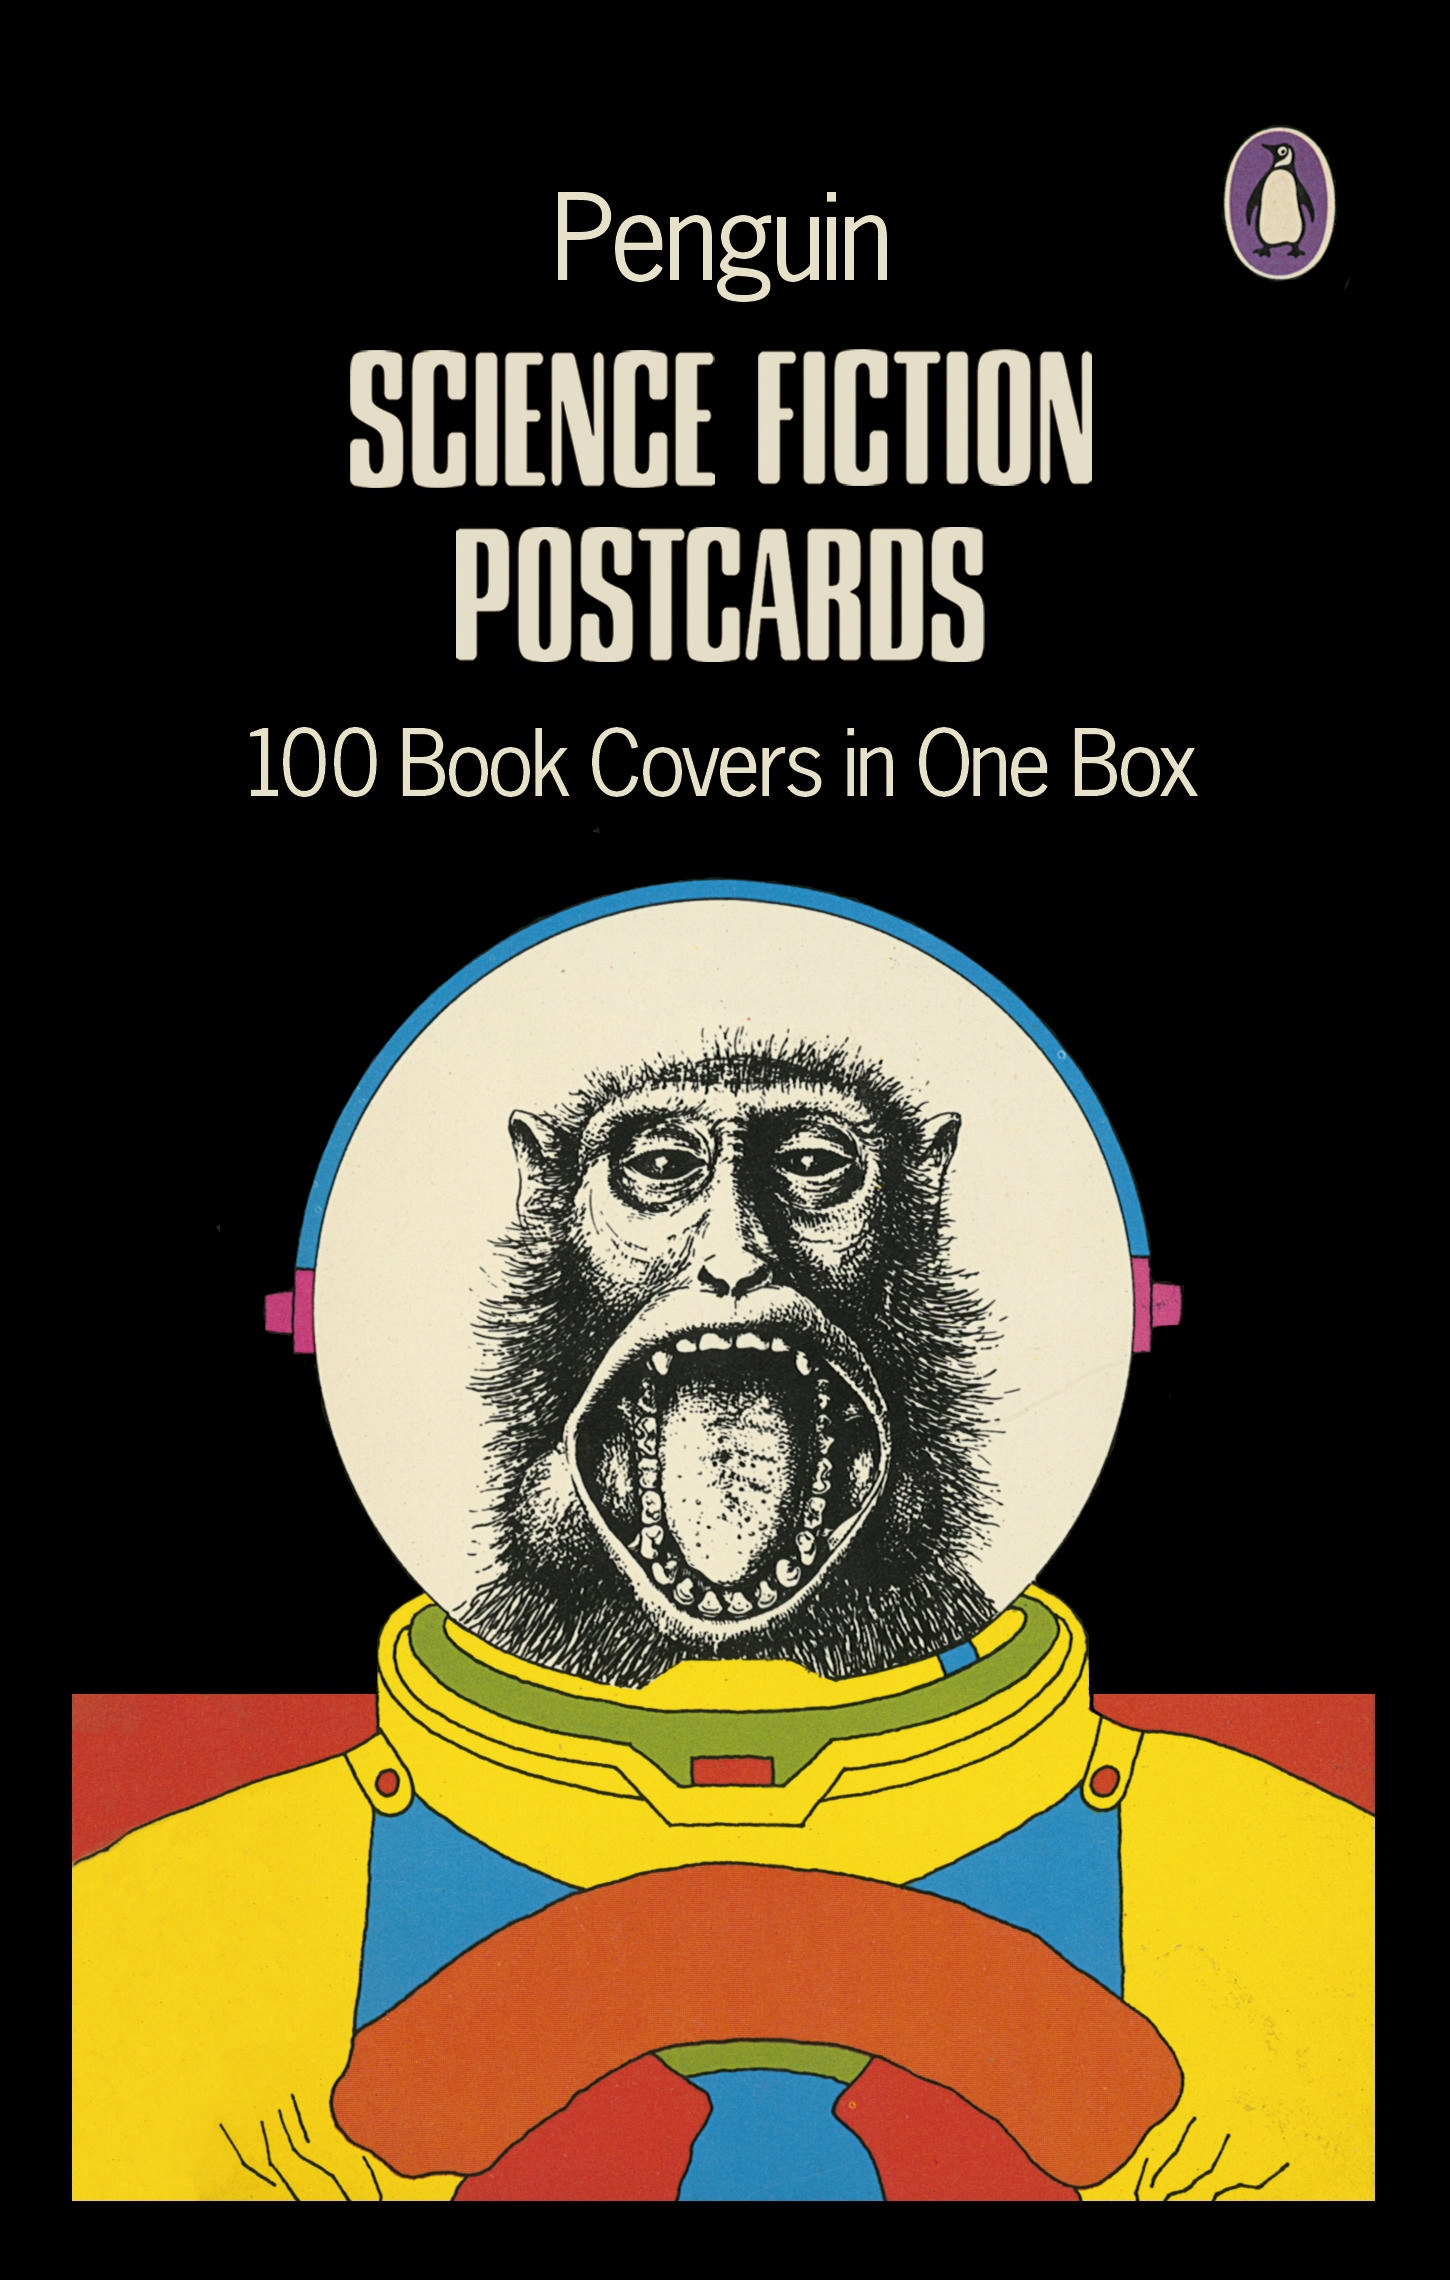 Make A Penguin Book Cover : Buzzed books penguin science fiction postcards the